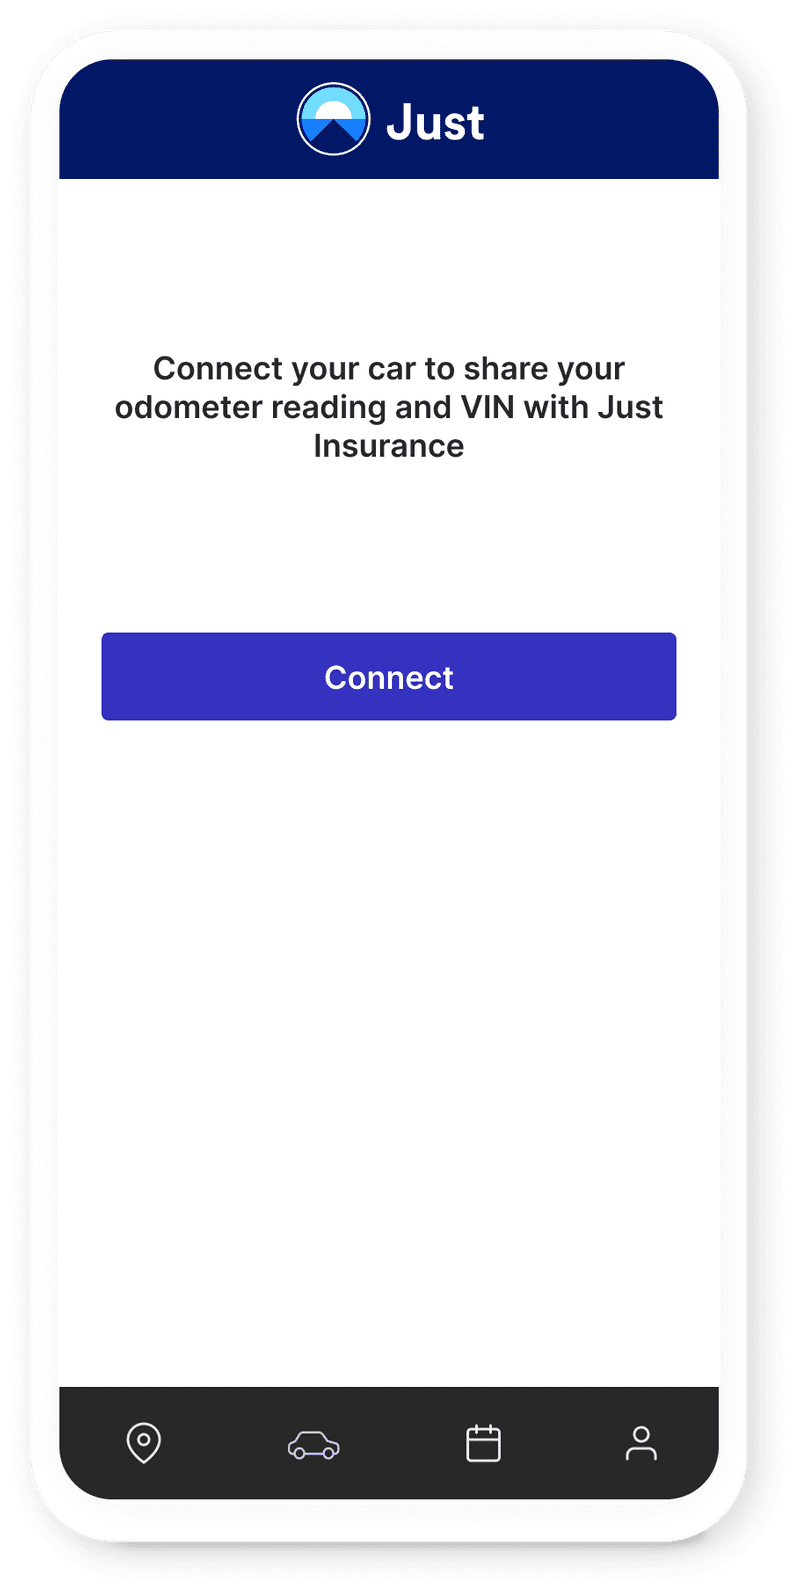 Just Insurance's mobile app prompting the user to connect their car, allowing approved guests to unlock it from the app